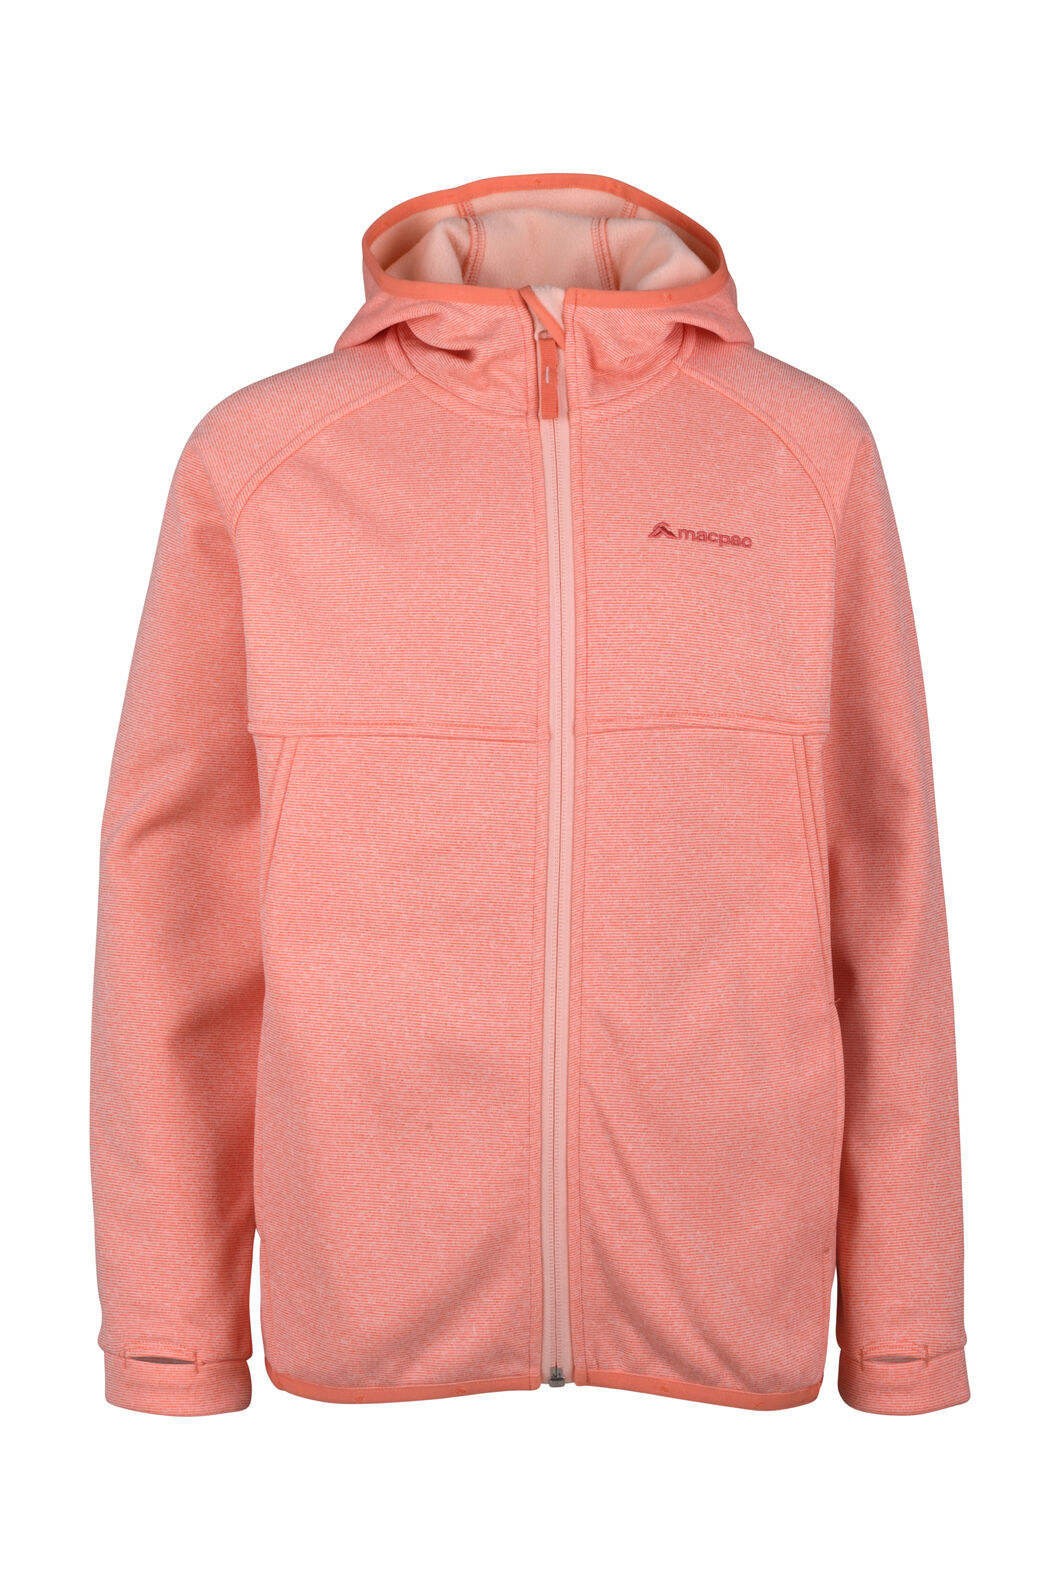 Macpac Kiwi Fleece Jacket - Kids', Fusion Coral, hi-res